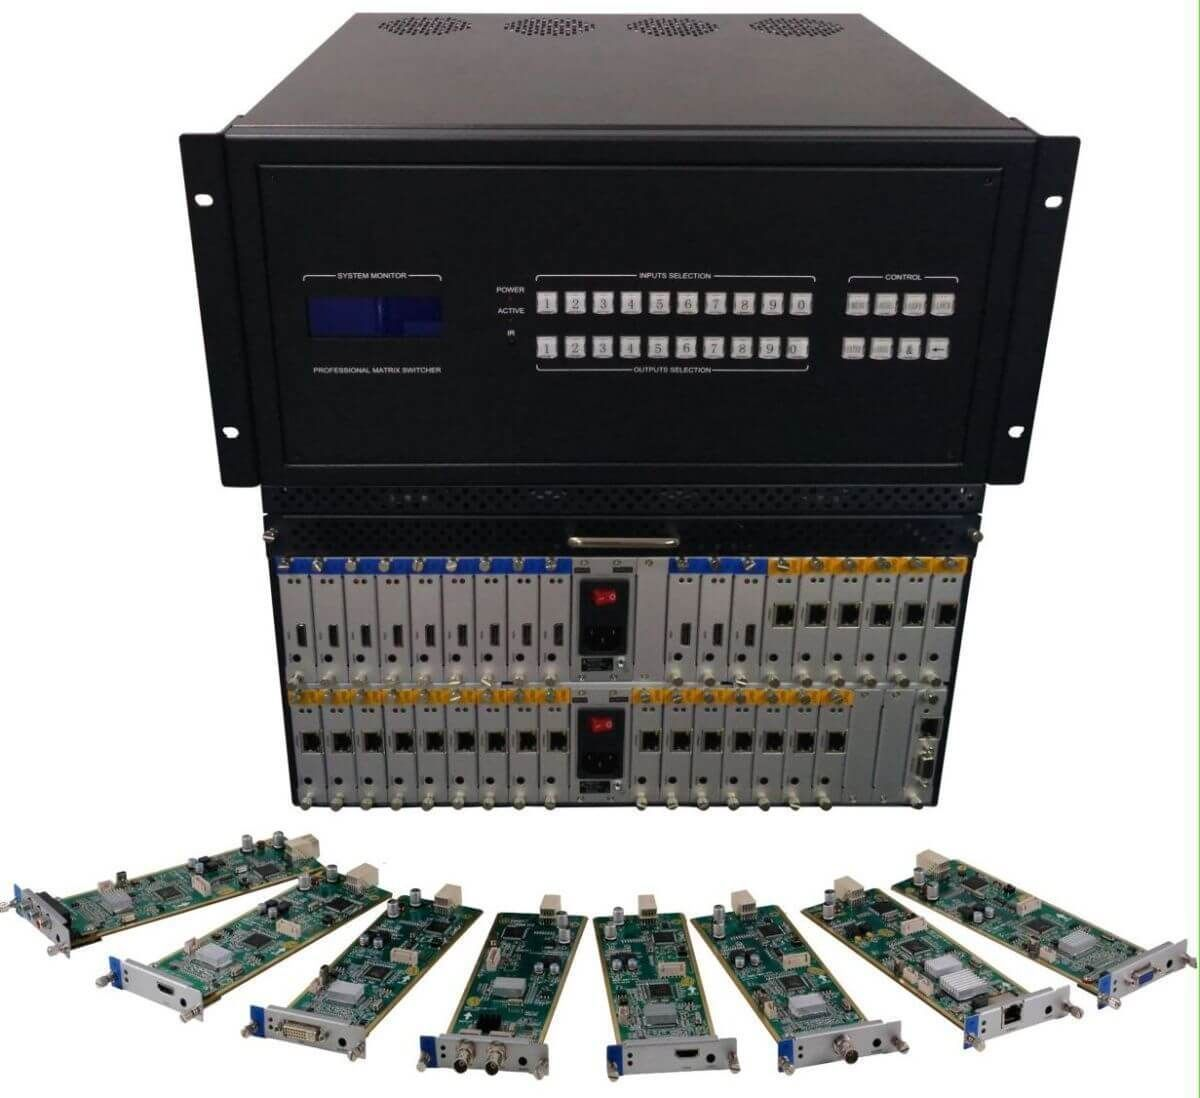 6x28 HDMI Matrix Switcher with Video Wall Processor